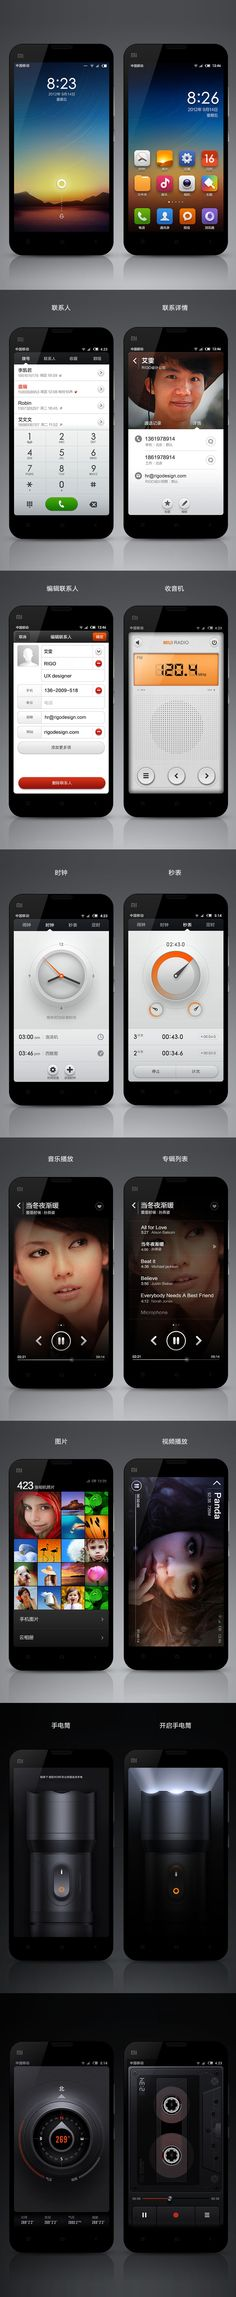 MIUI V5. I used to run MIUI when I was still using my Android powered HTC HD2.